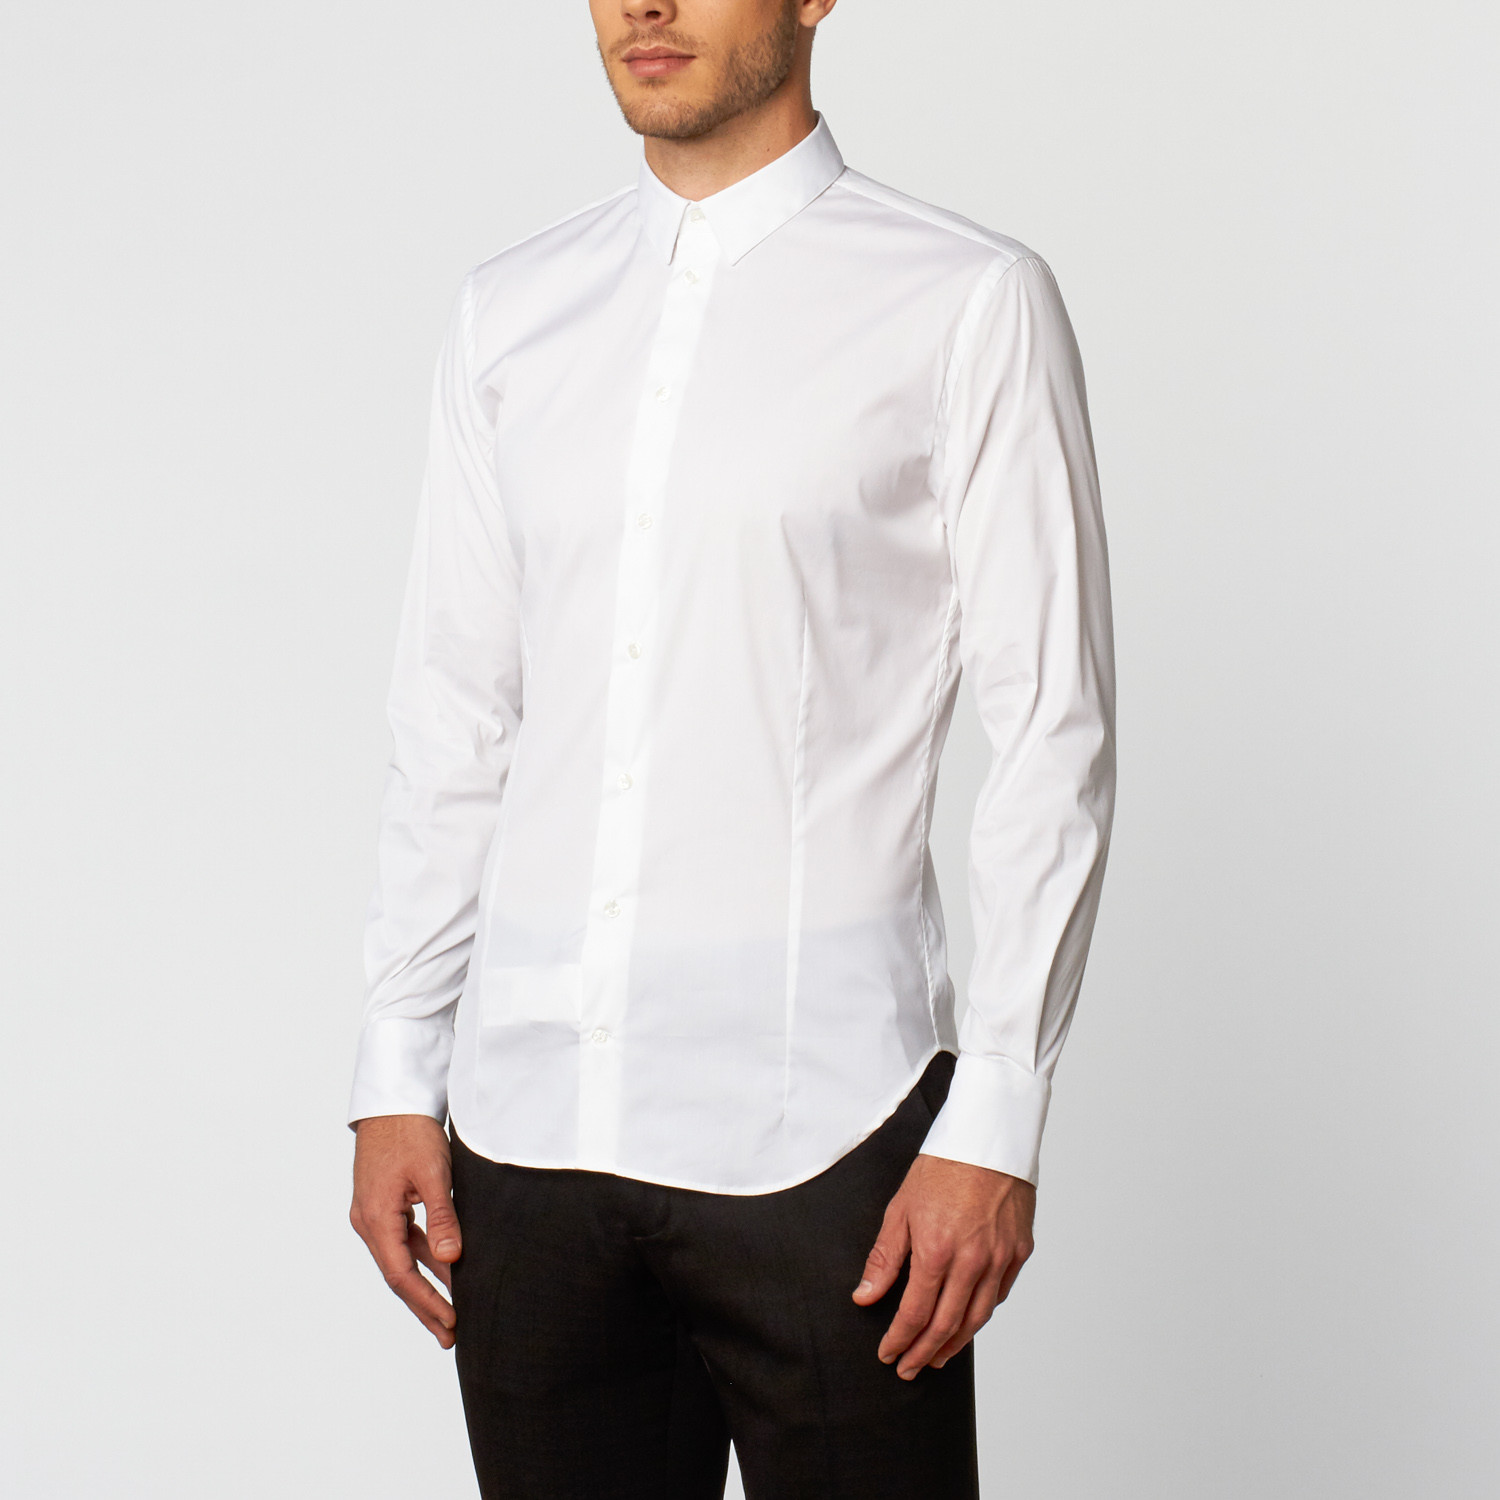 Solid Long Sleeve Dress Shirt White Us 145r Clearance